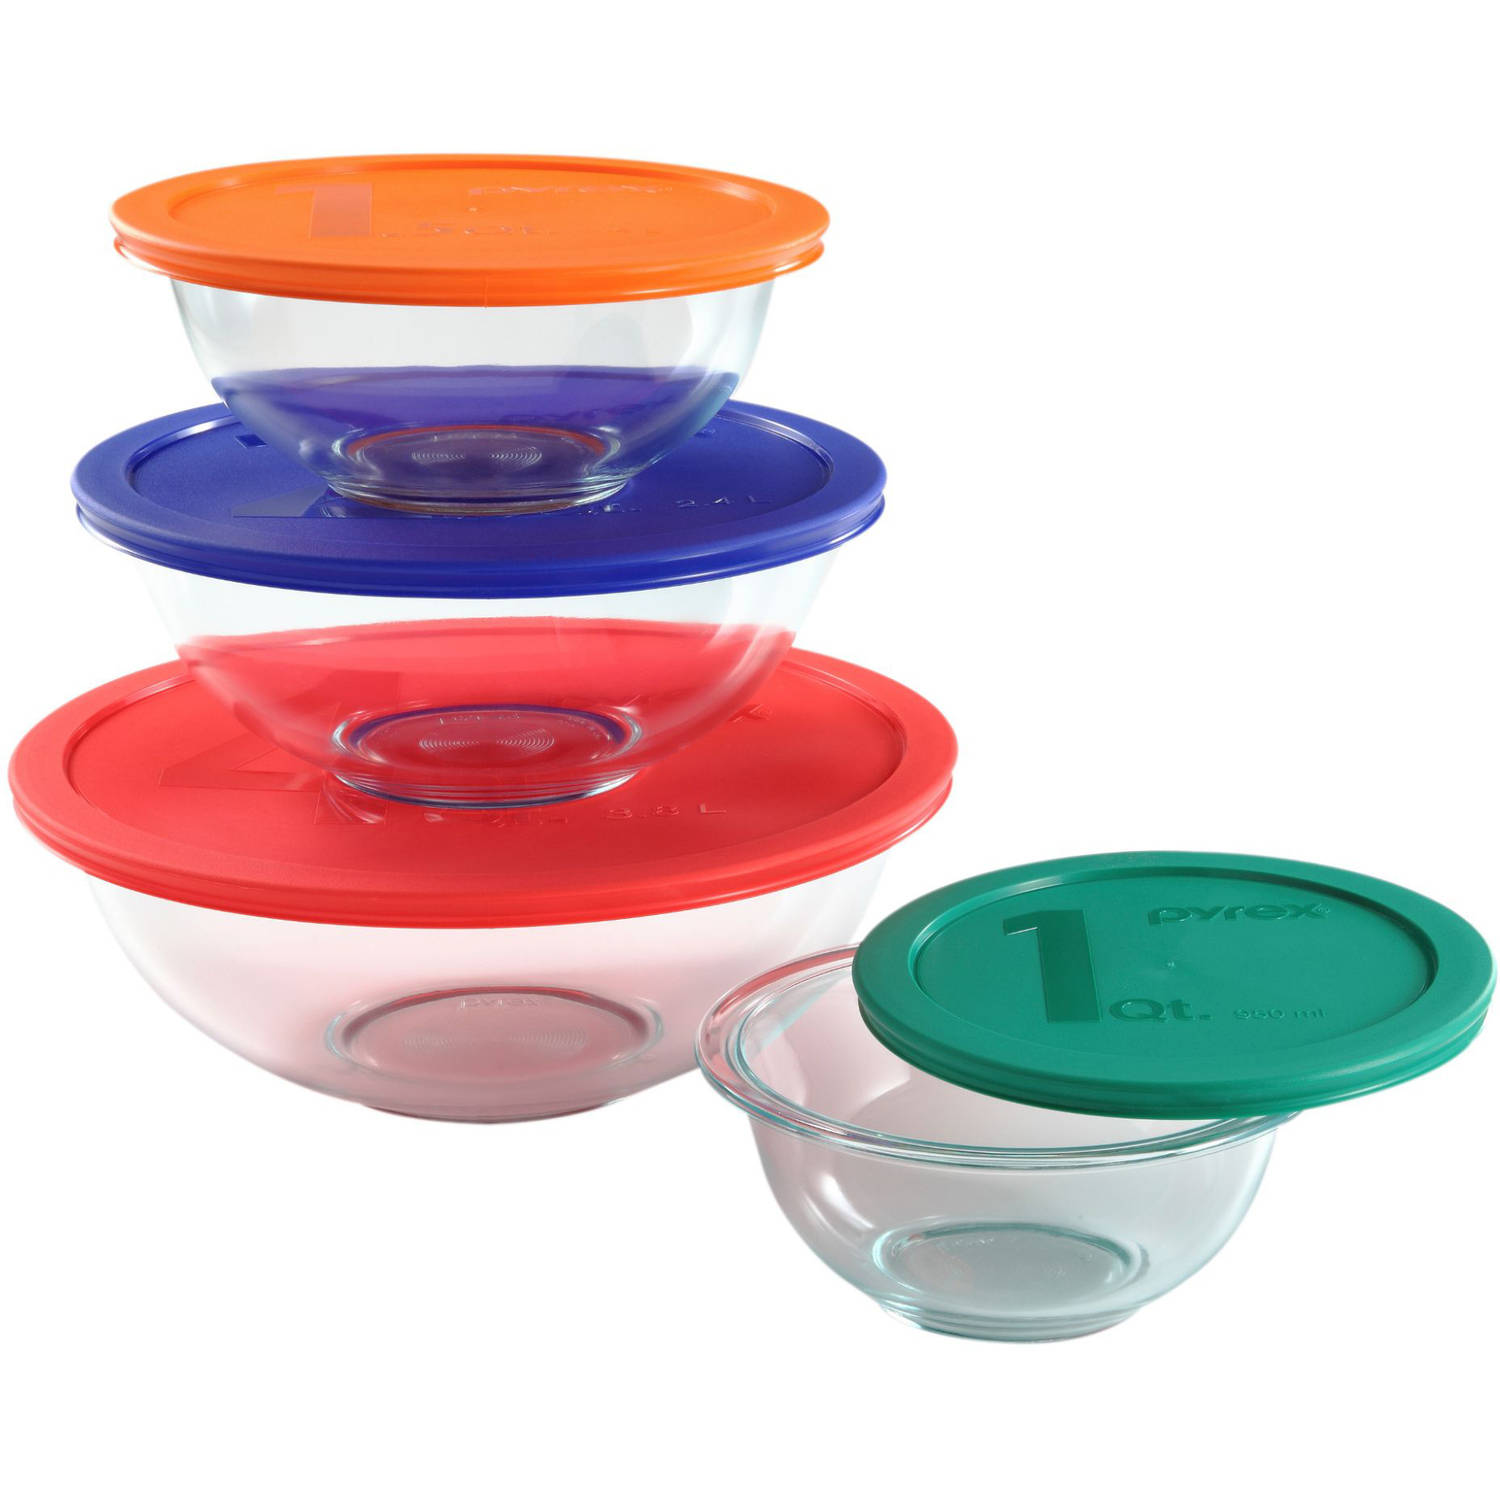 Pyrex 8 Piece Smart Essentials Mixing Bowl Set   Walmart.com